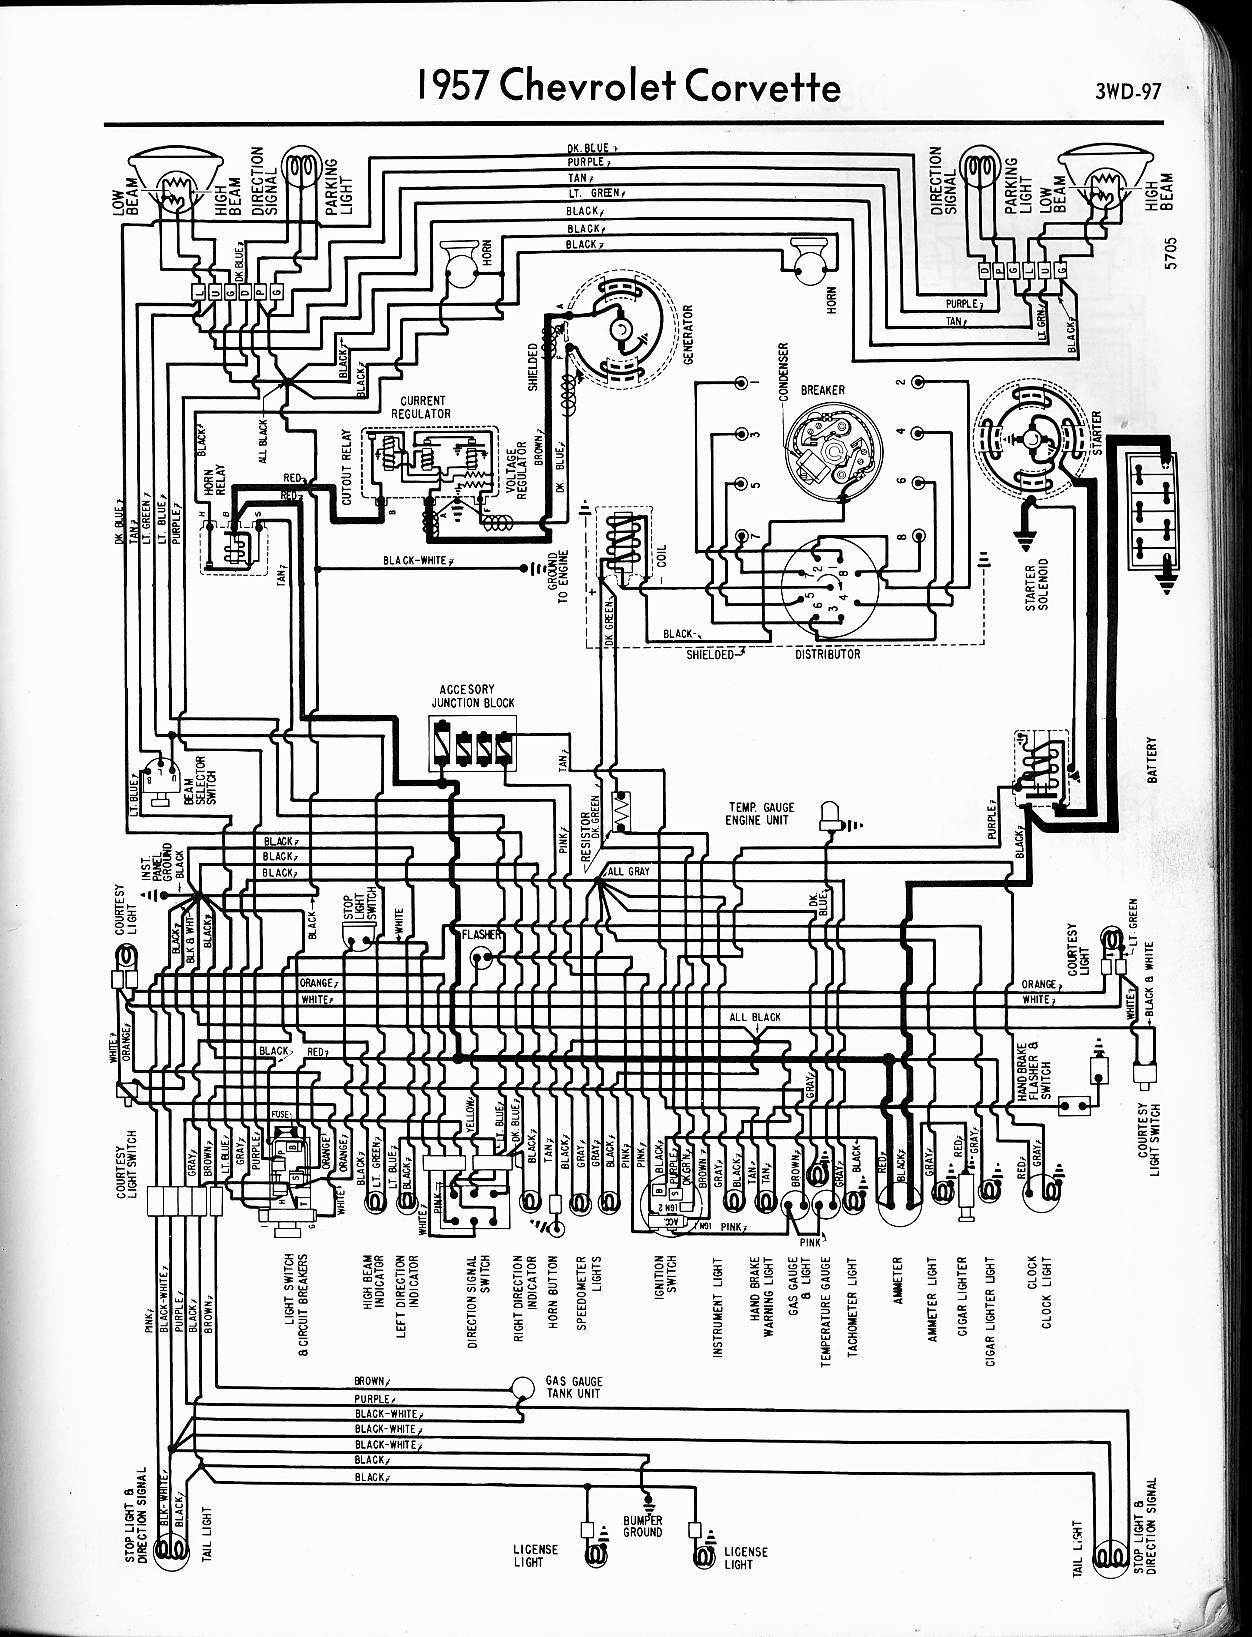 57 chevy battery wiring simple wiring diagram site 65 mustang alternator wiring diagram 1957 chevy wiring schematics wiring diagrams scematic 57 chevy wiring fuses 1957 chevy wiring schematics wiring